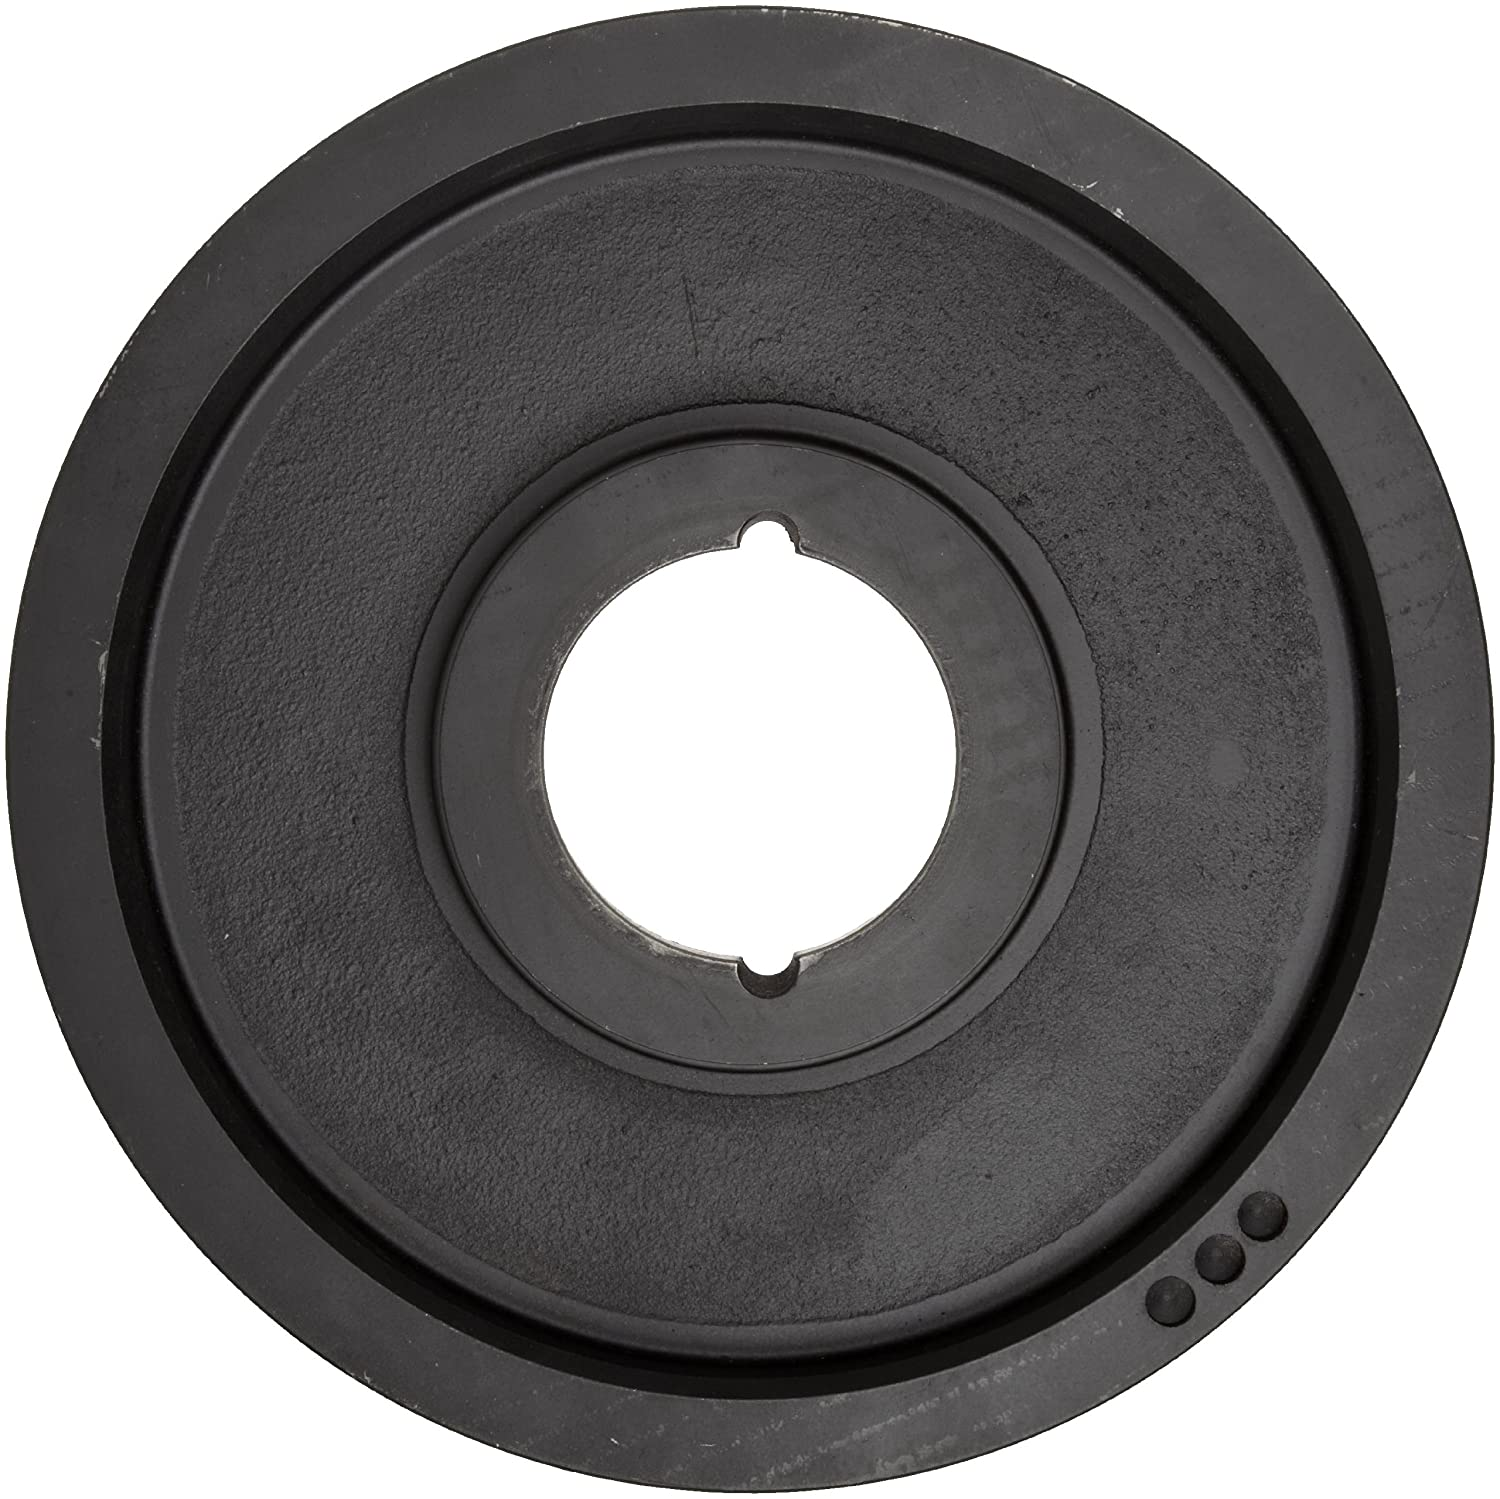 2517 Bushing required 15.4 Pitch Diameter 15//B 15//B 15.4 Pitch Diameter 18 OD A Class 30 Gray Cast Iron A//B Belt Section A 18 OD 2 Grooves Martin 2 B 154 TB Conventional Taper Bushed Sheave 1378 max rpm